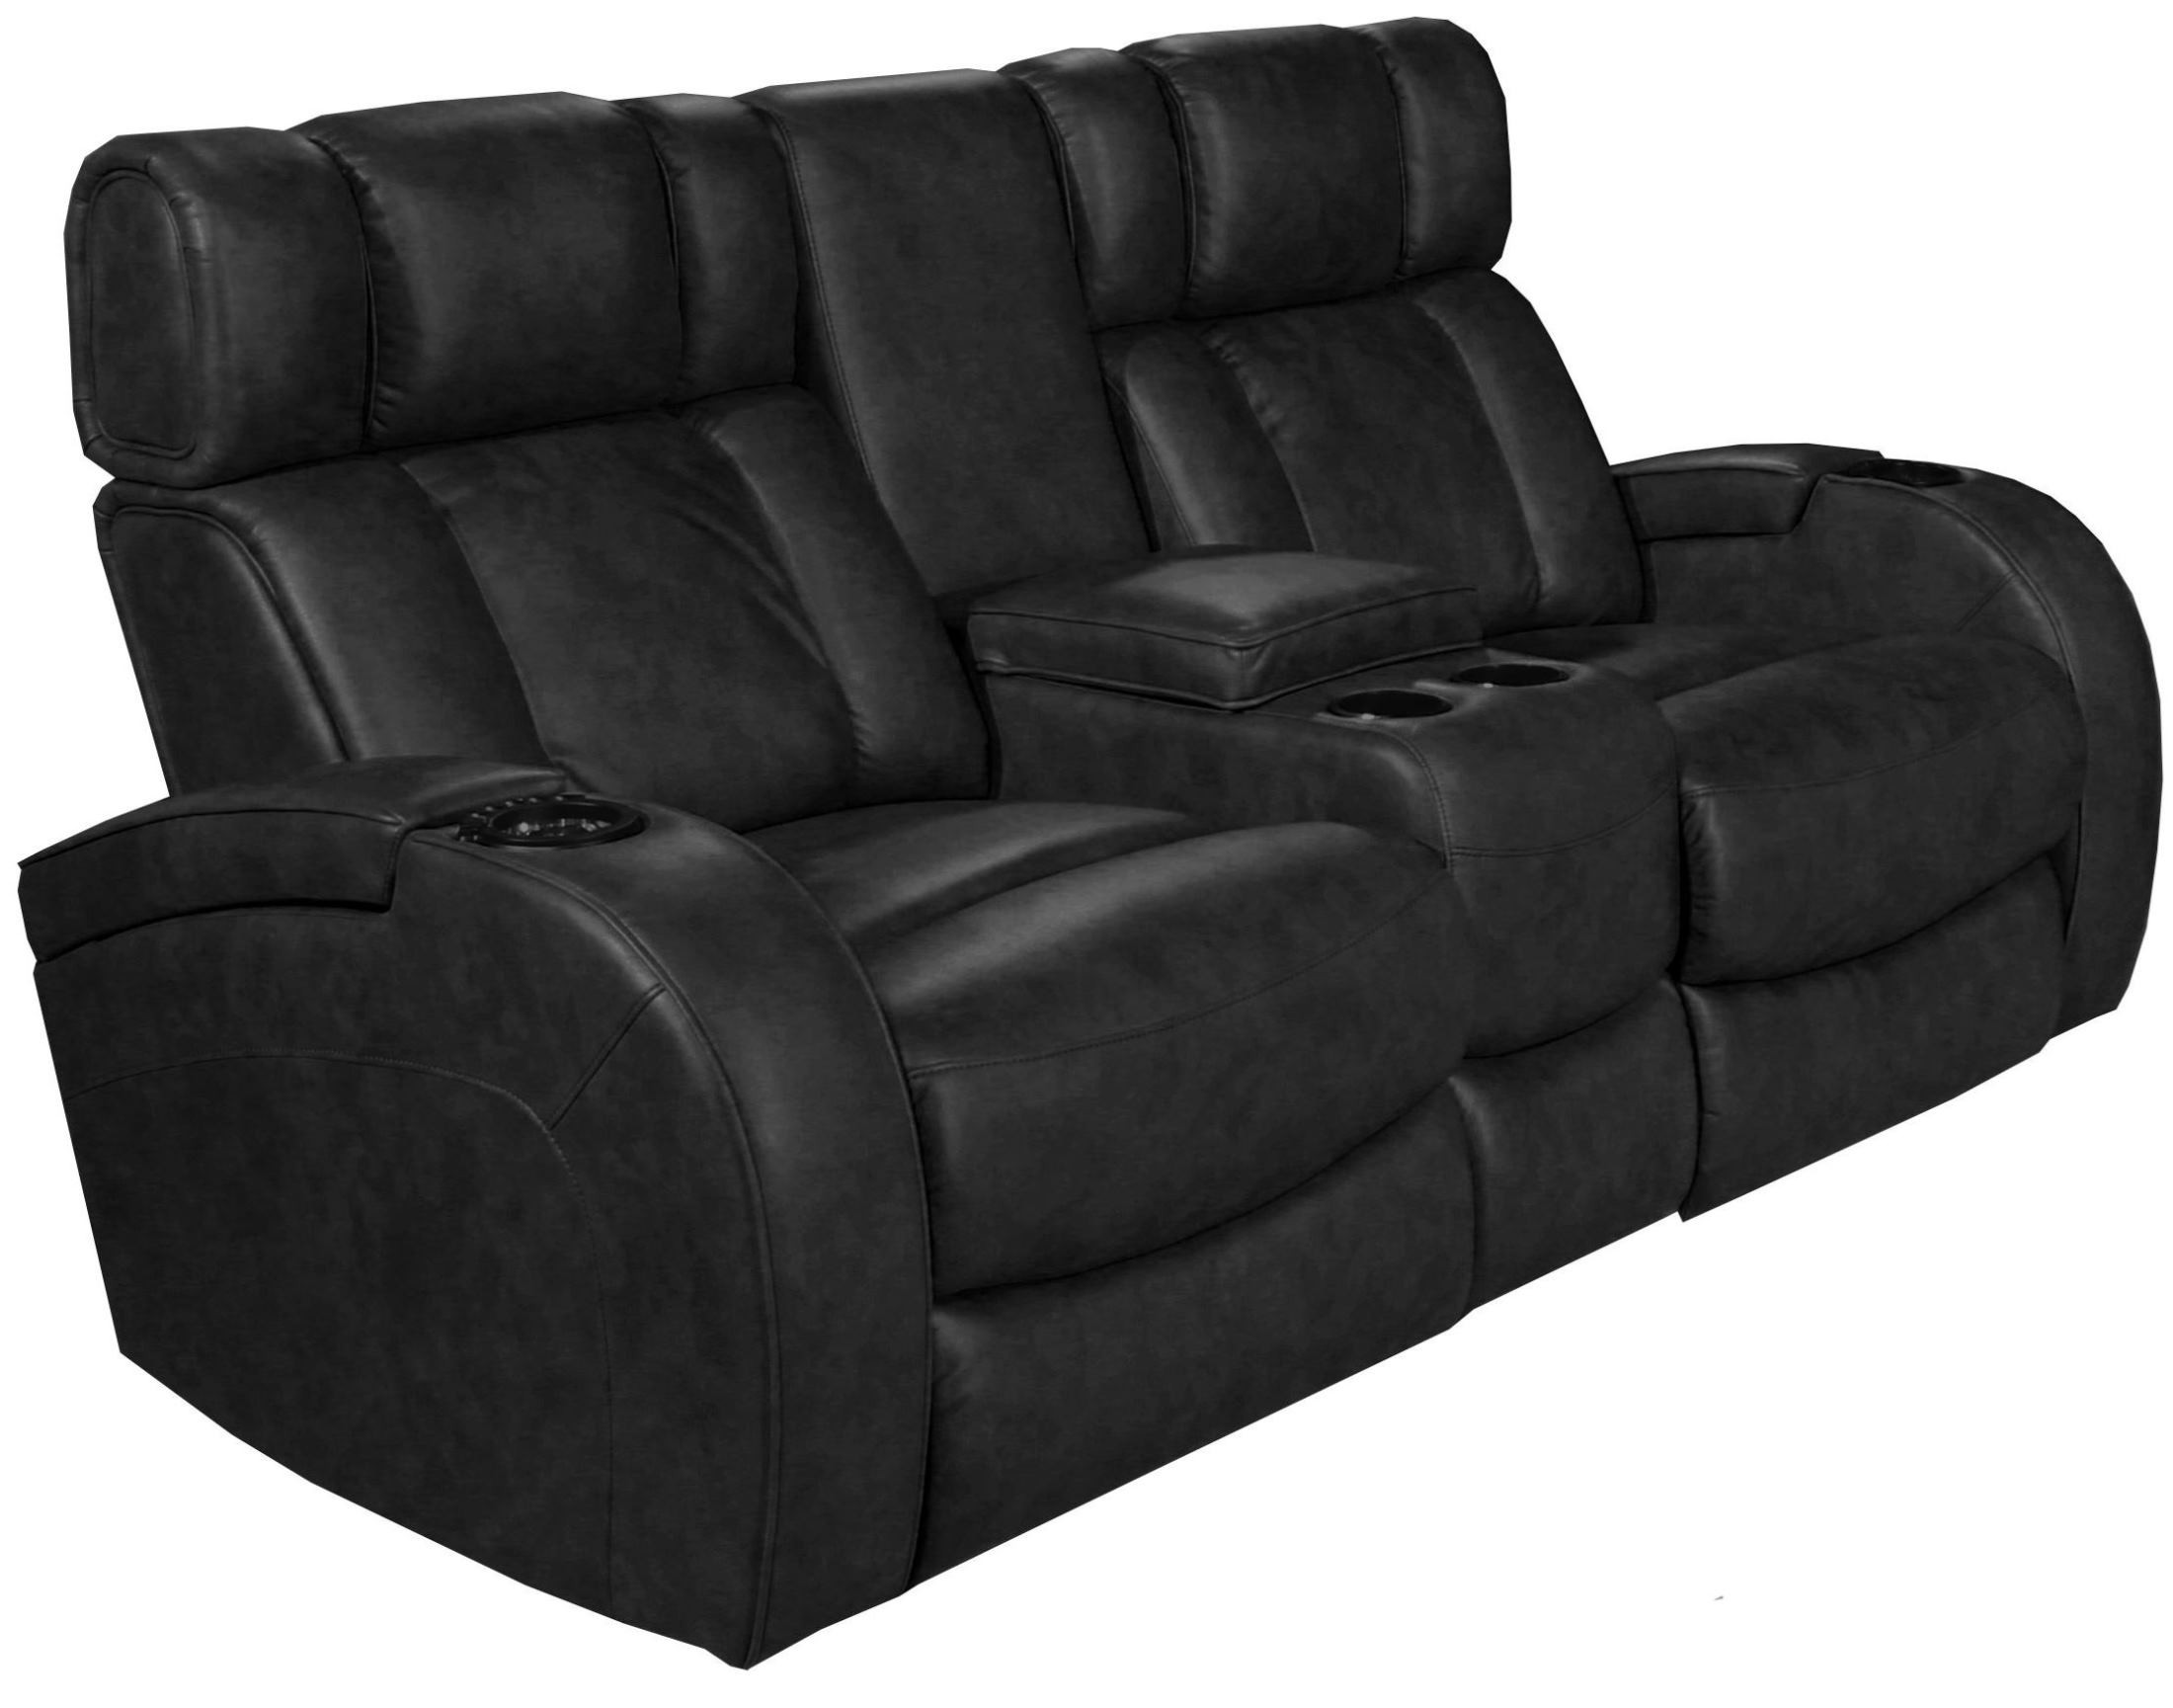 Andromeda Black Leather Gel Power Reclining Loveseat Ro8071 22p 121g Row One